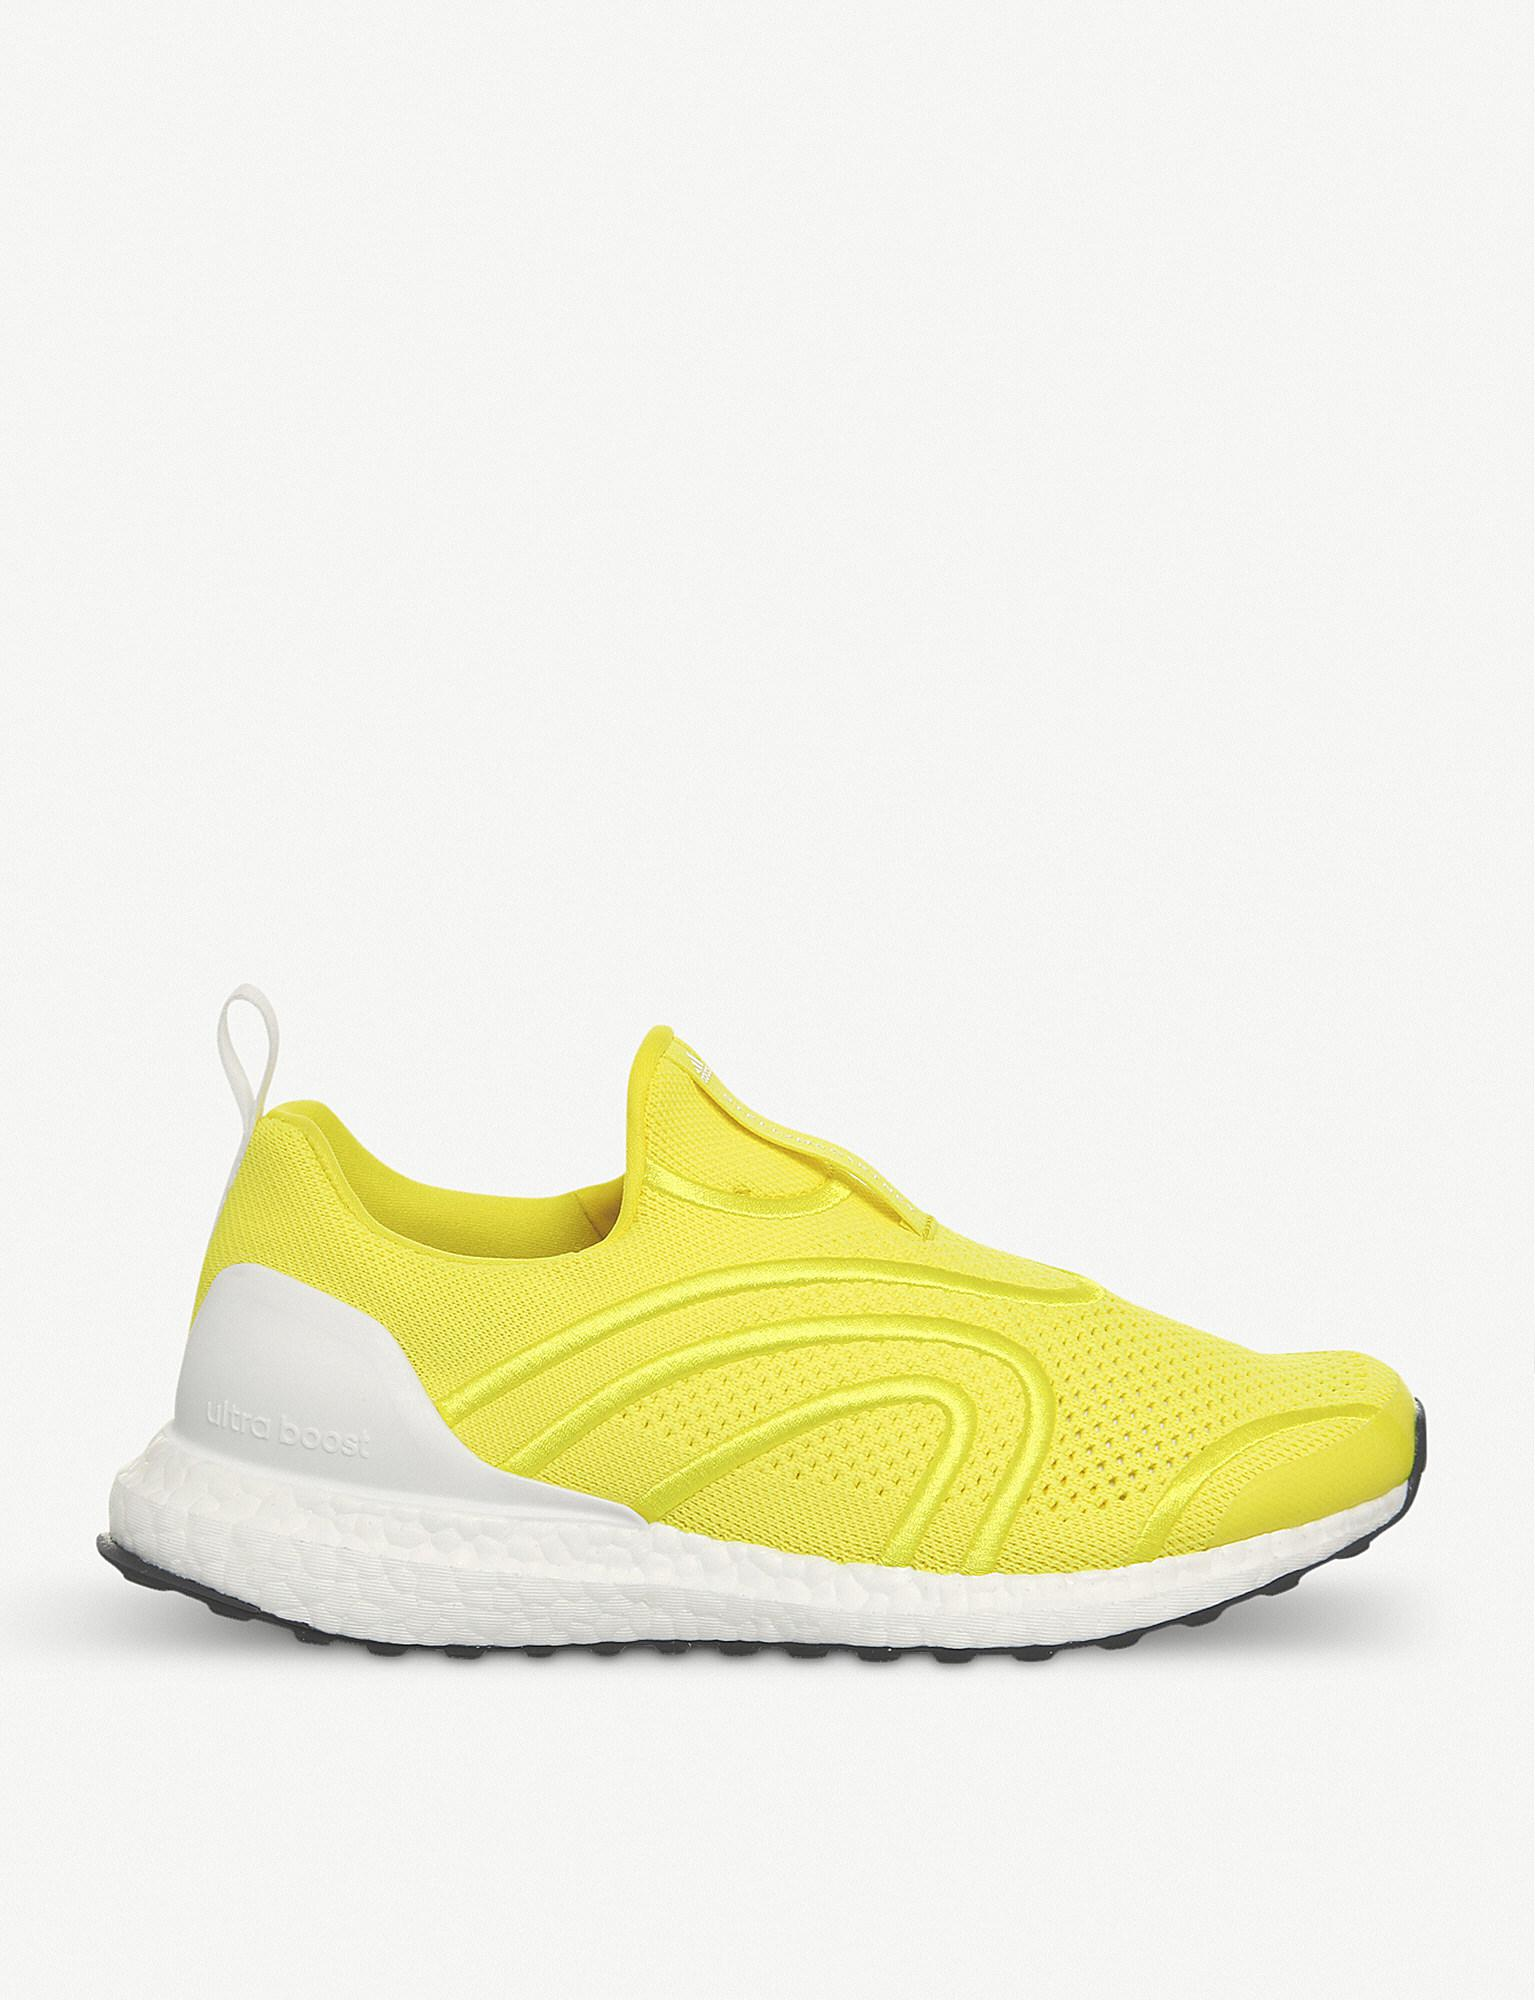 7485d3c99bf79 ... czech adidas ultraboost uncaged trainers in yellow for men lyst e24e4  8e787